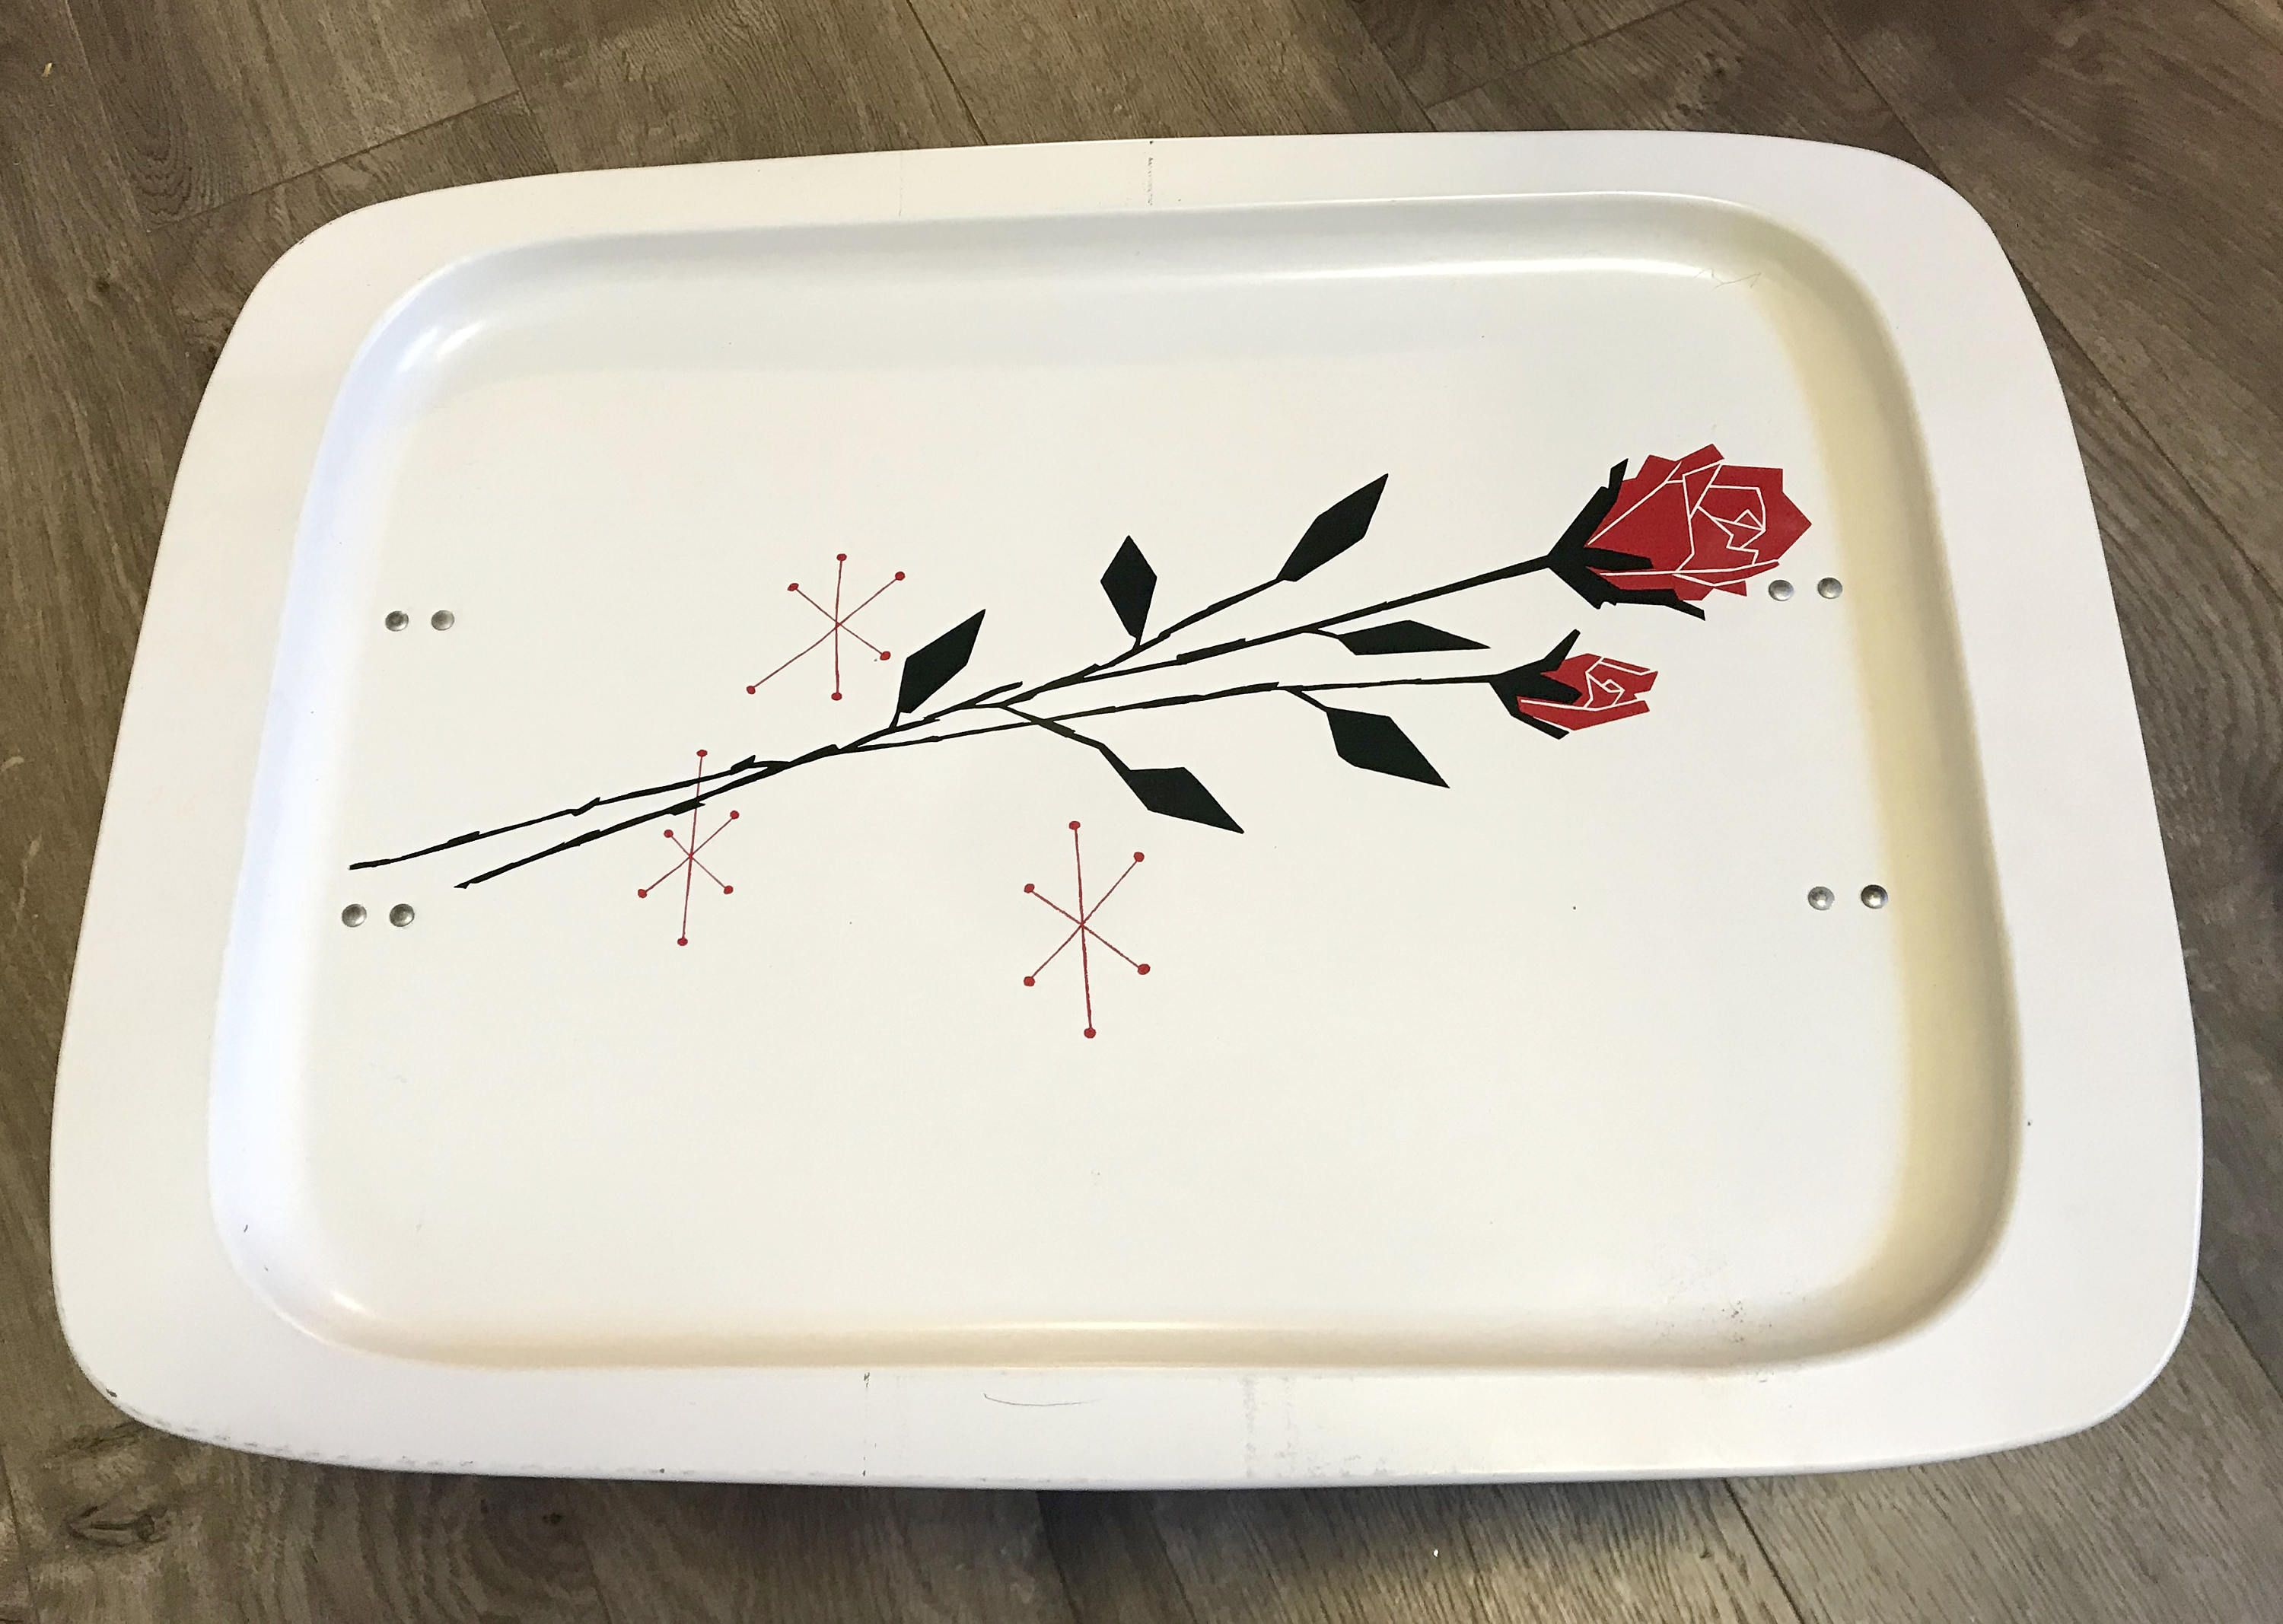 Mid Century Lap Tray Tv Tray With Legs Off White With Red Rose And Starbursts By Sixthstreetmarket On Etsy Lap Tray Atomic Starburst Pattern Vintage Barware